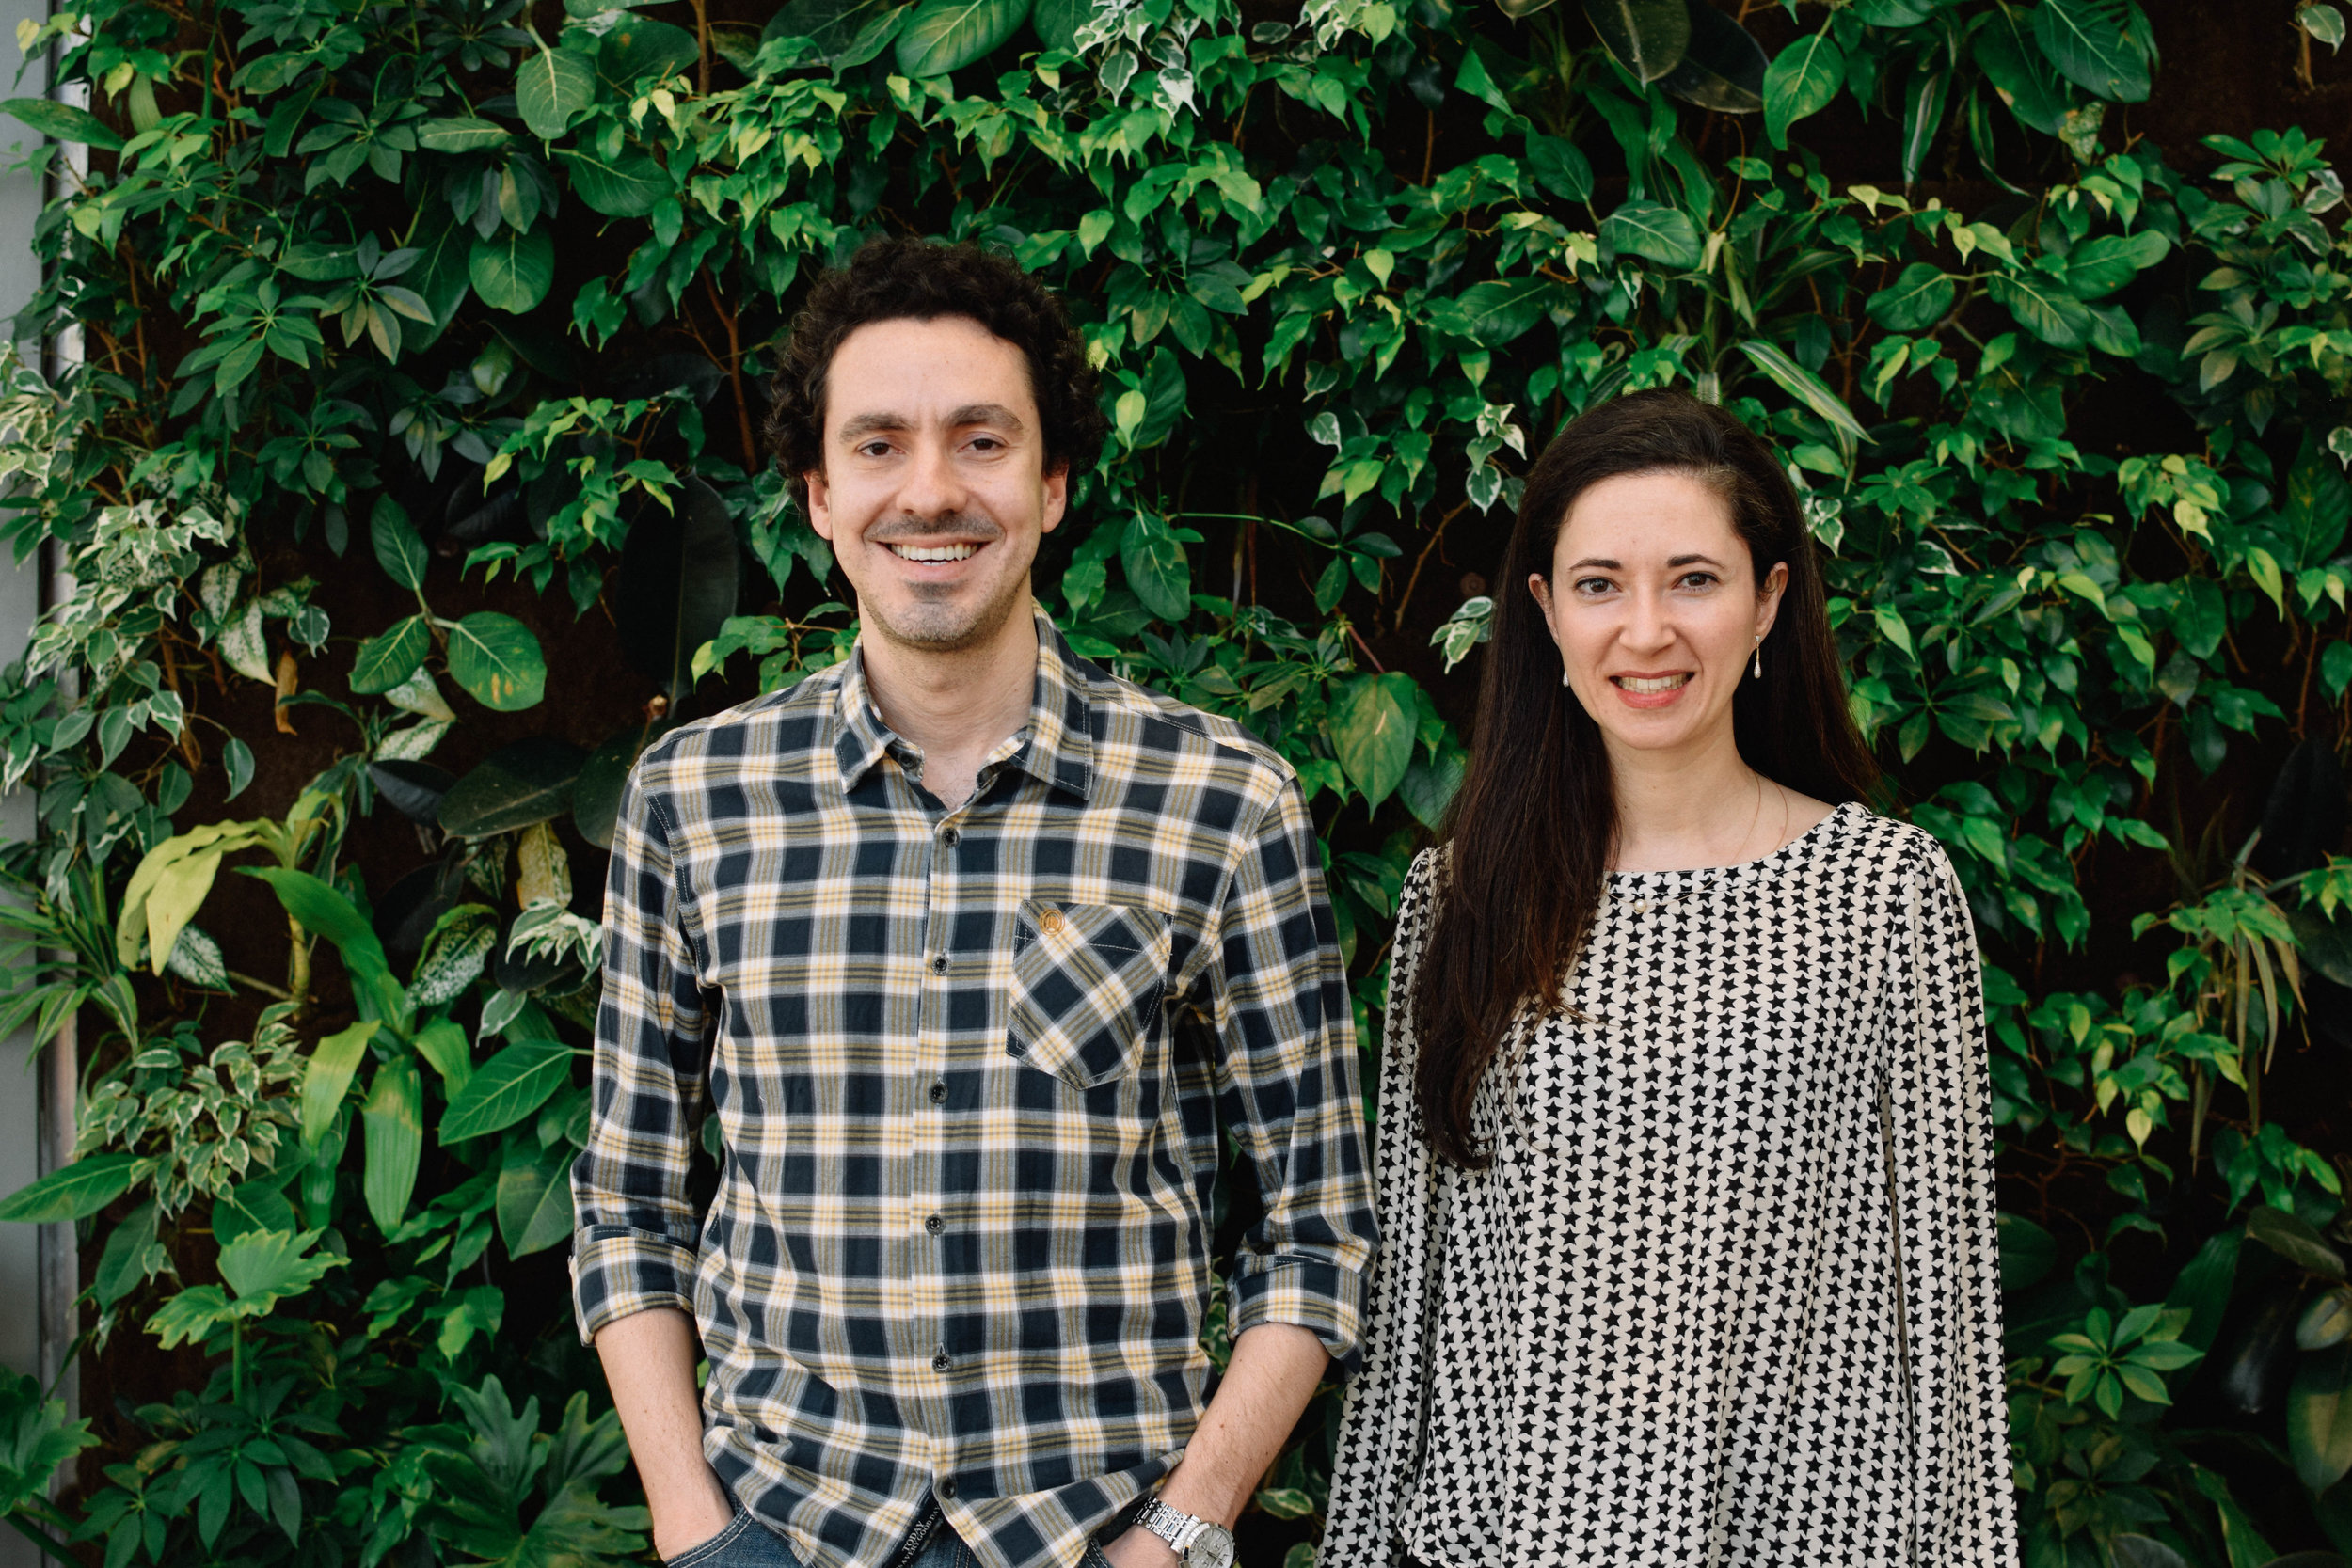 Sustenta - A platform providing awareness, information, and support for sustainable and healthy diets for people in BrazilRAFAEL PIRES BARBOSA, ALINE MARTINS DE CARVALHO